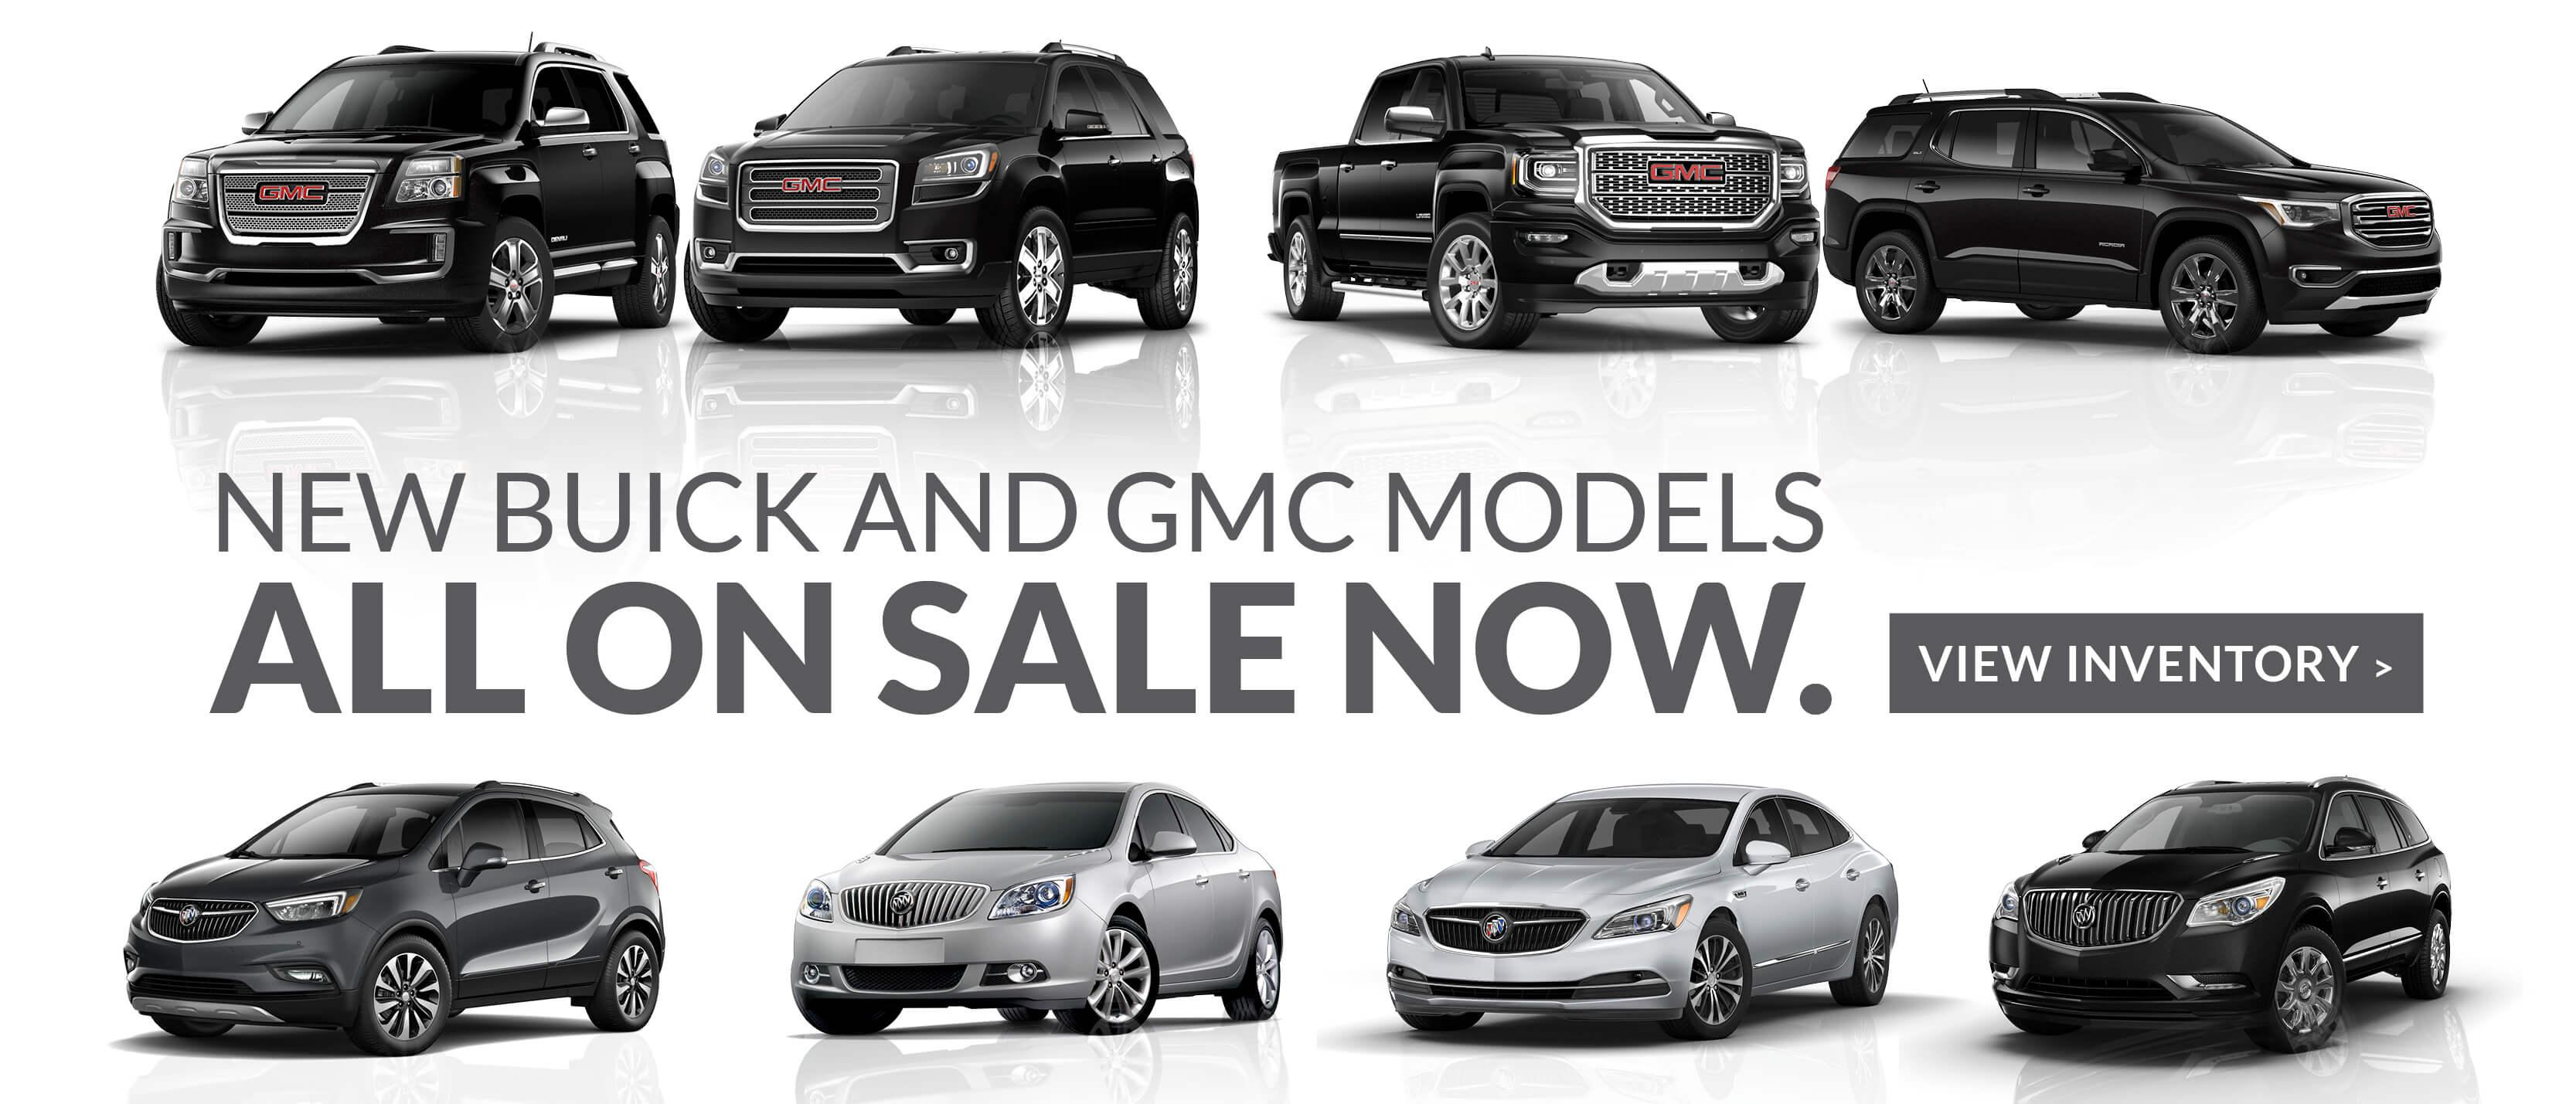 Used Car Dealerships In Columbia Sc Best Of Jim Hudson Buick Gmc is A Columbia Buick Gmc Dealer and A New Car